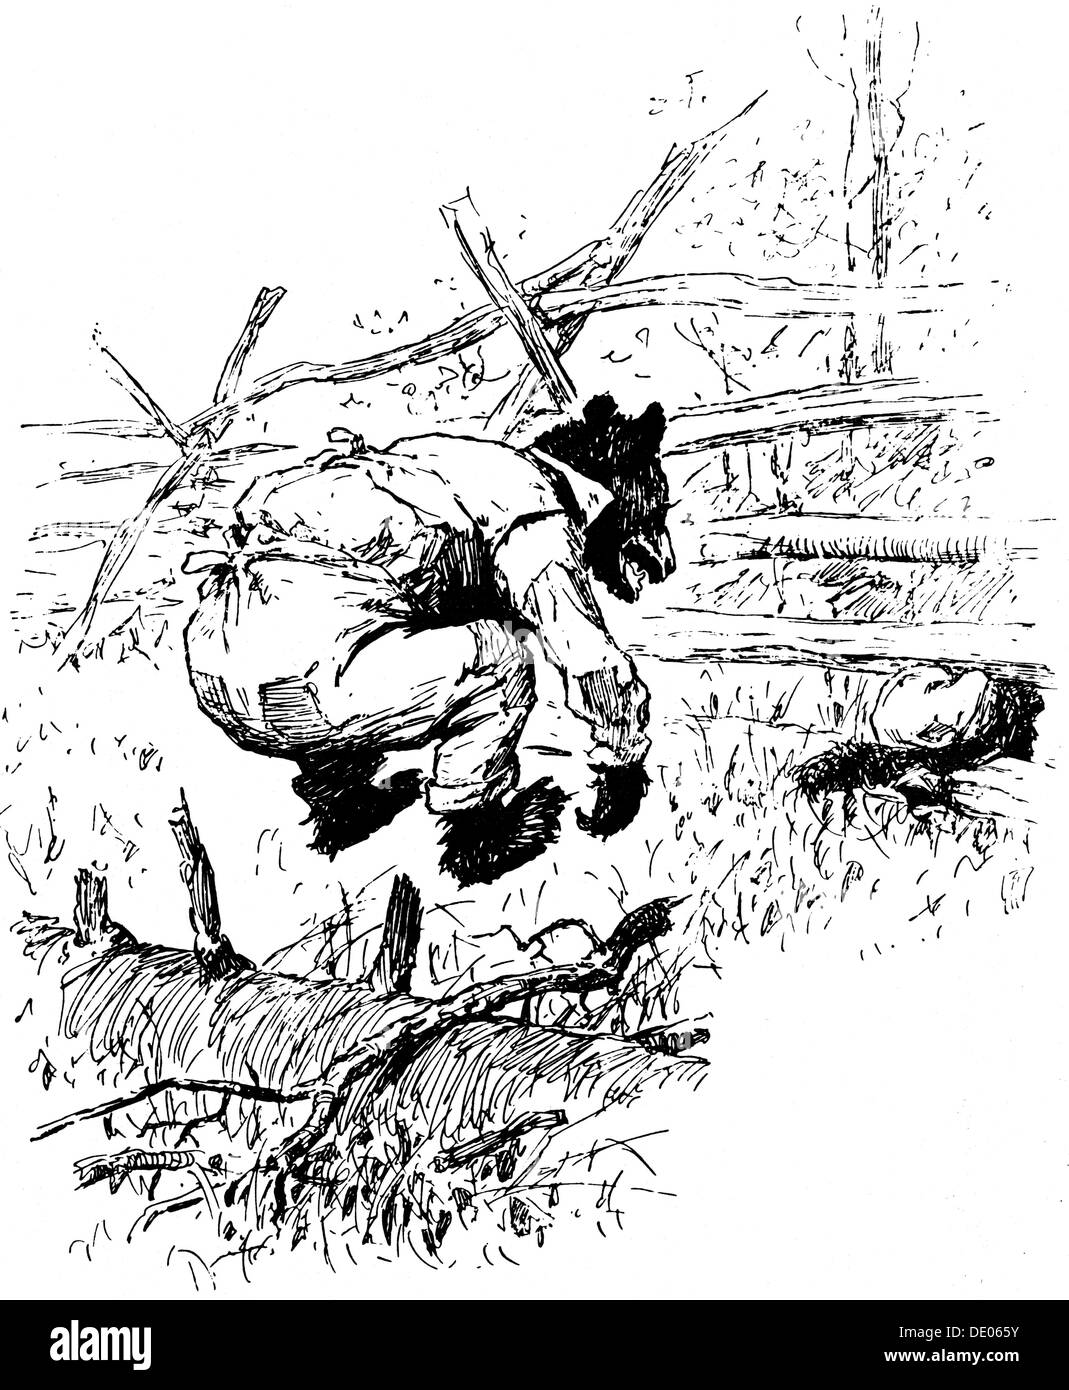 Illustration from the book The Complete Tales of Uncle Remus, by Joel Chandler Harris, 1895.  Artist: AB Frost - Stock Image